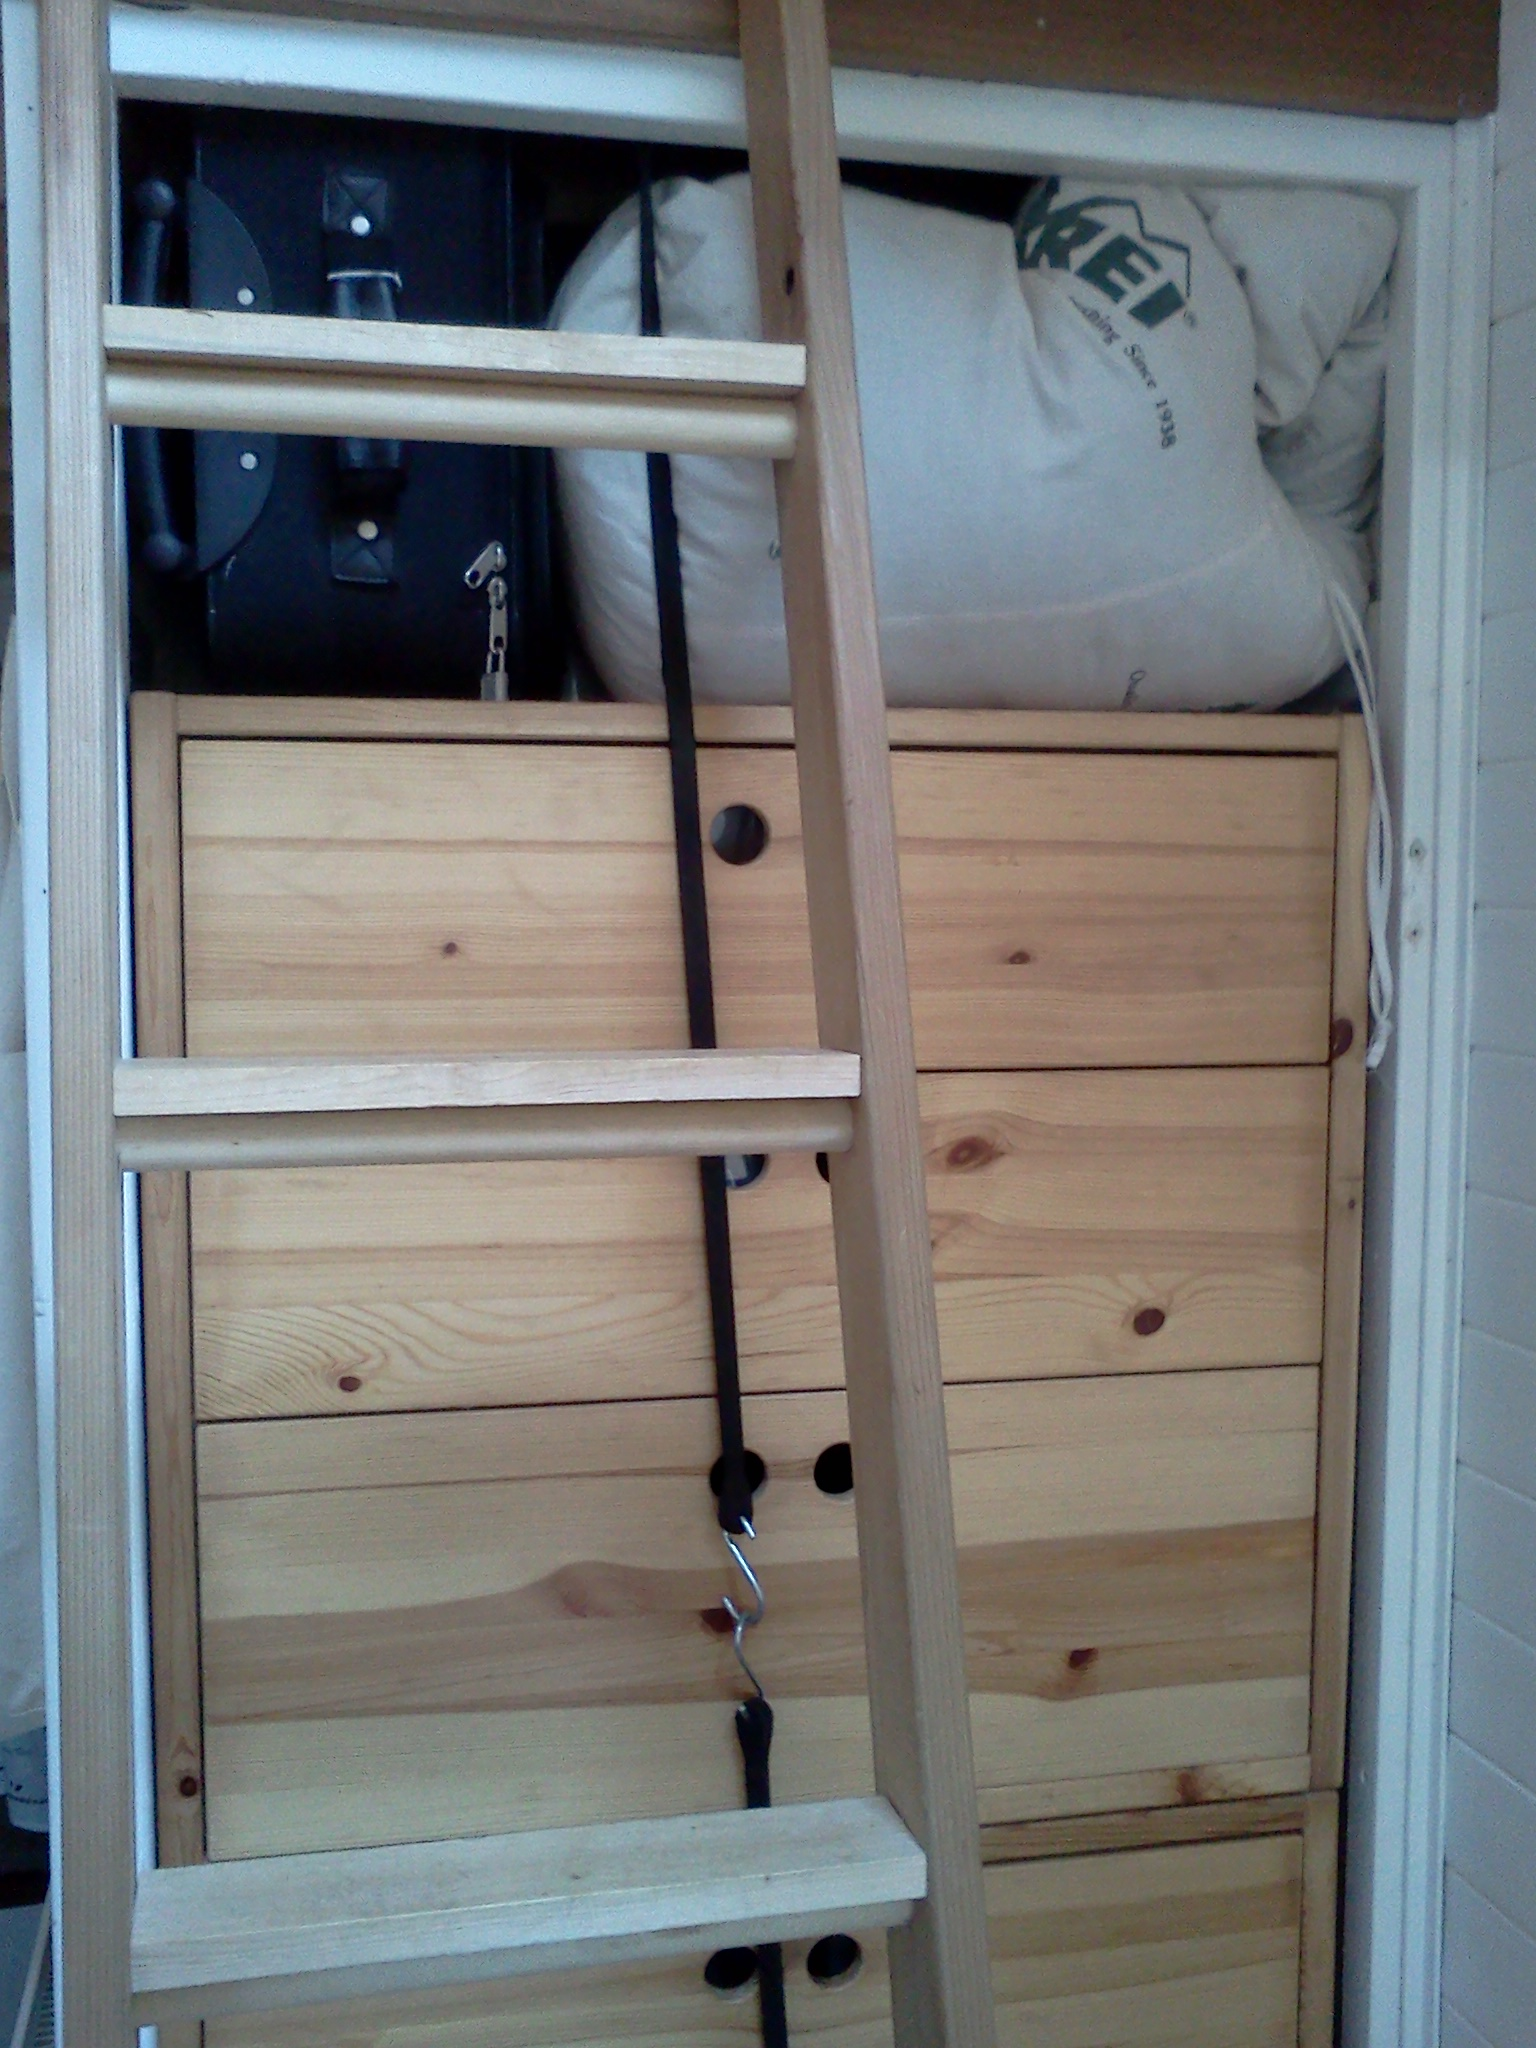 tuck breakables into clothes in dresser drawers, bungee closed